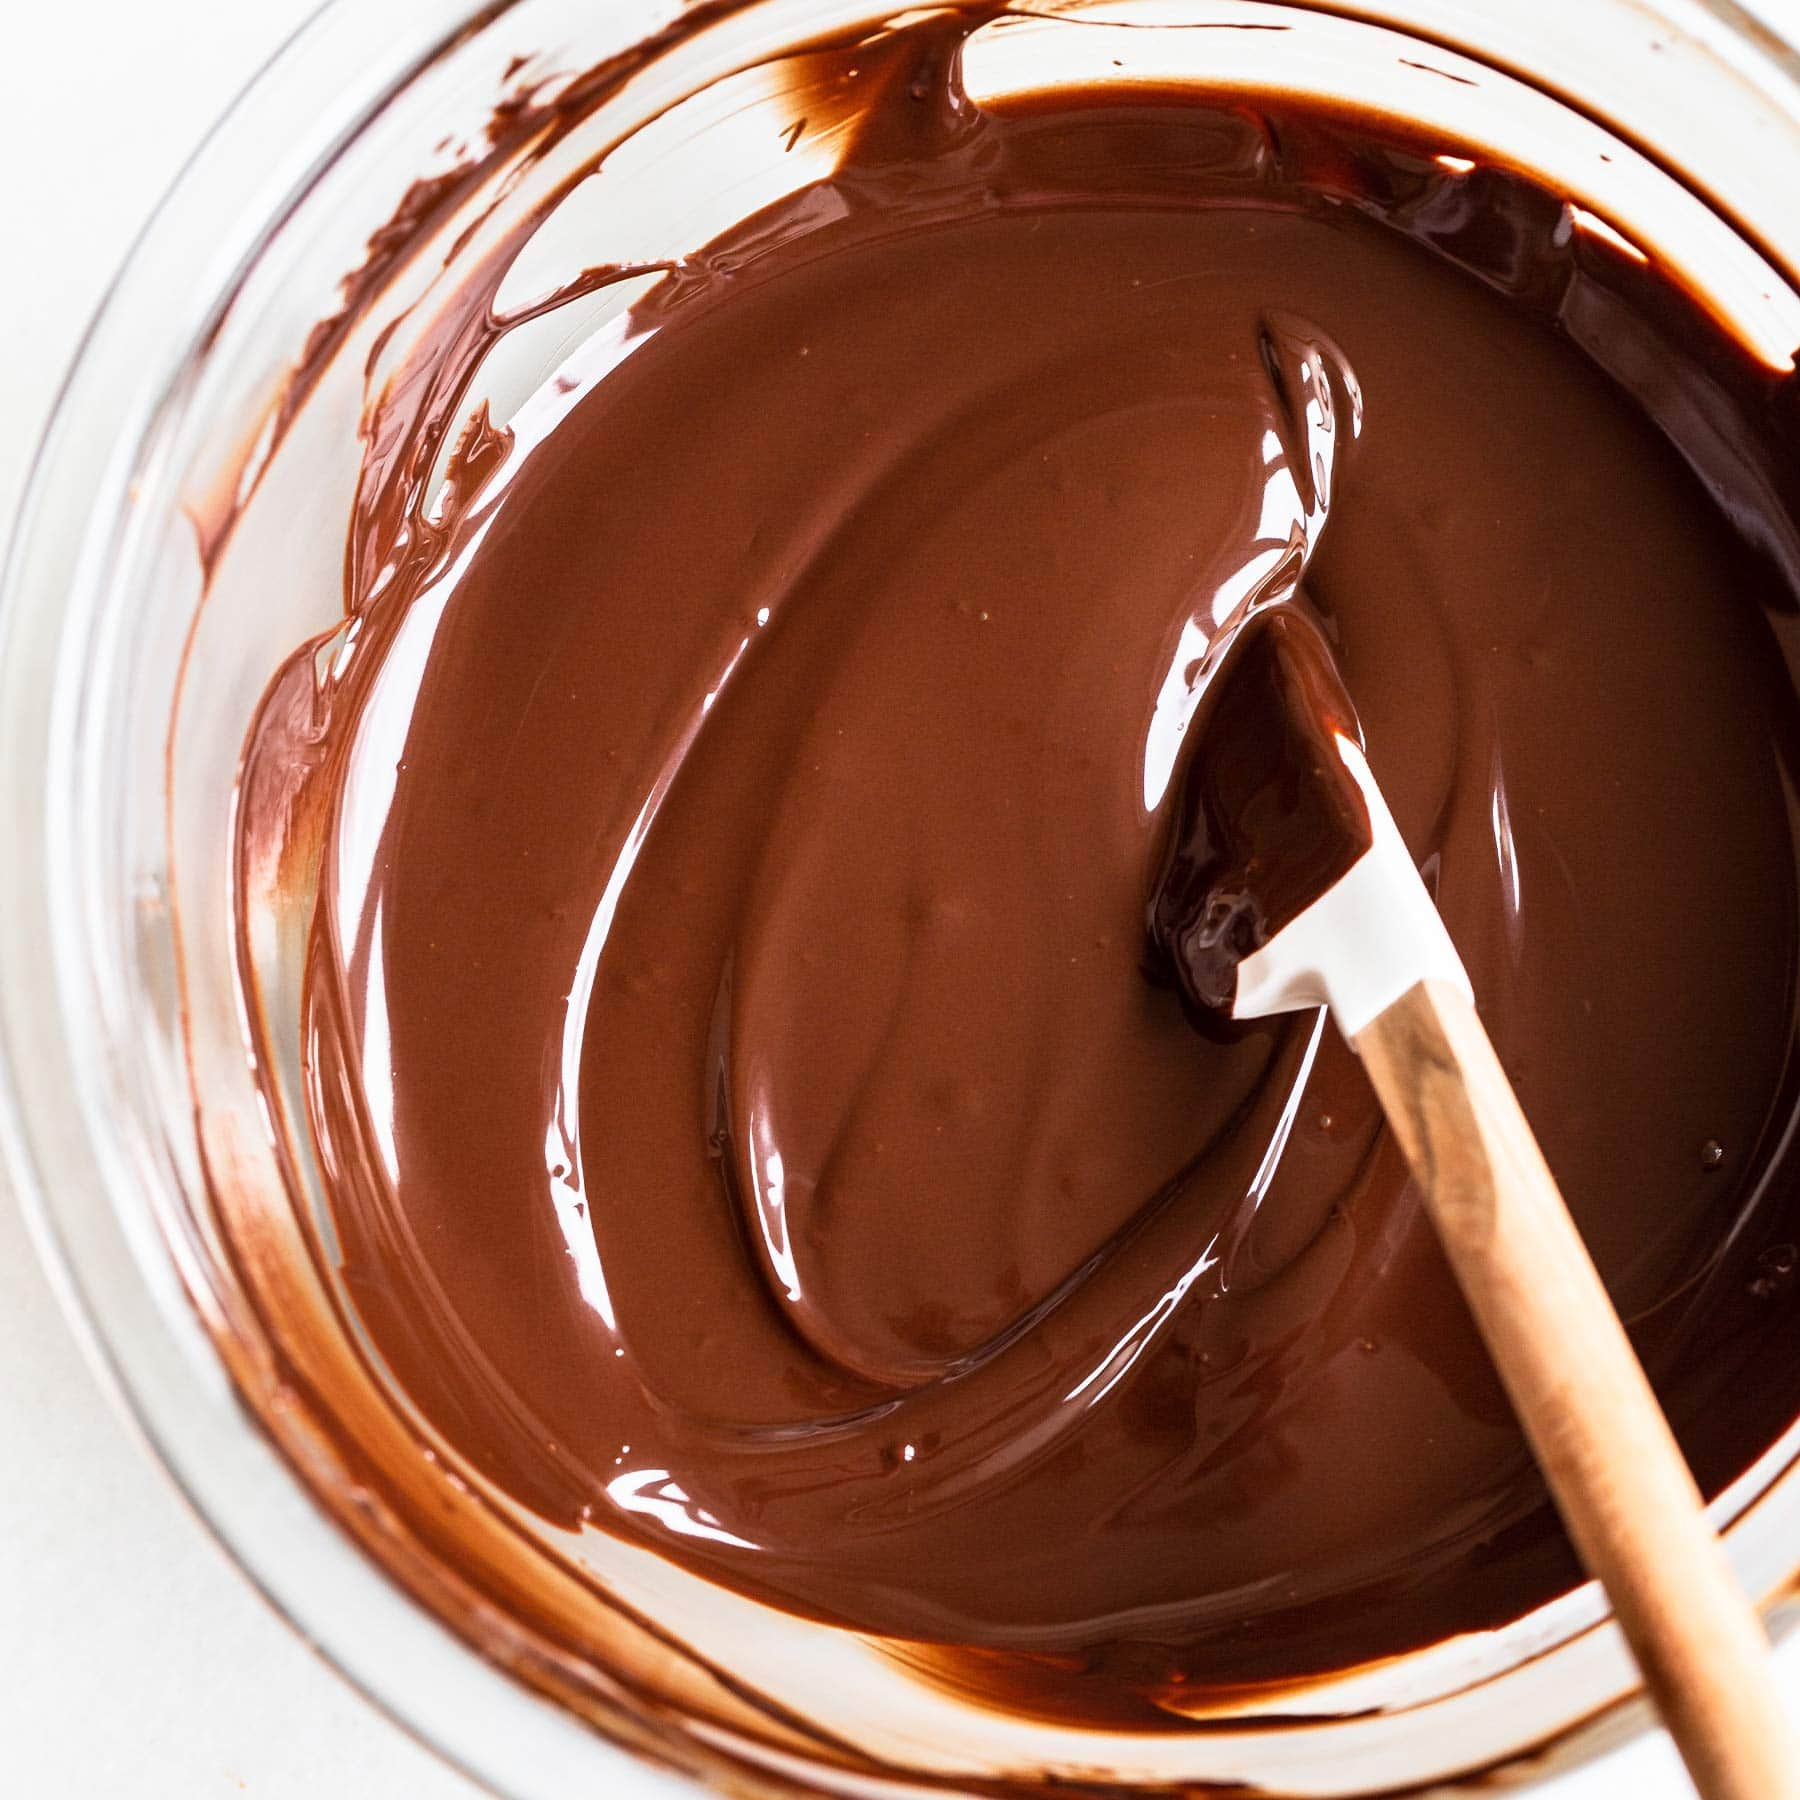 how to get perfectly tempered chocolate